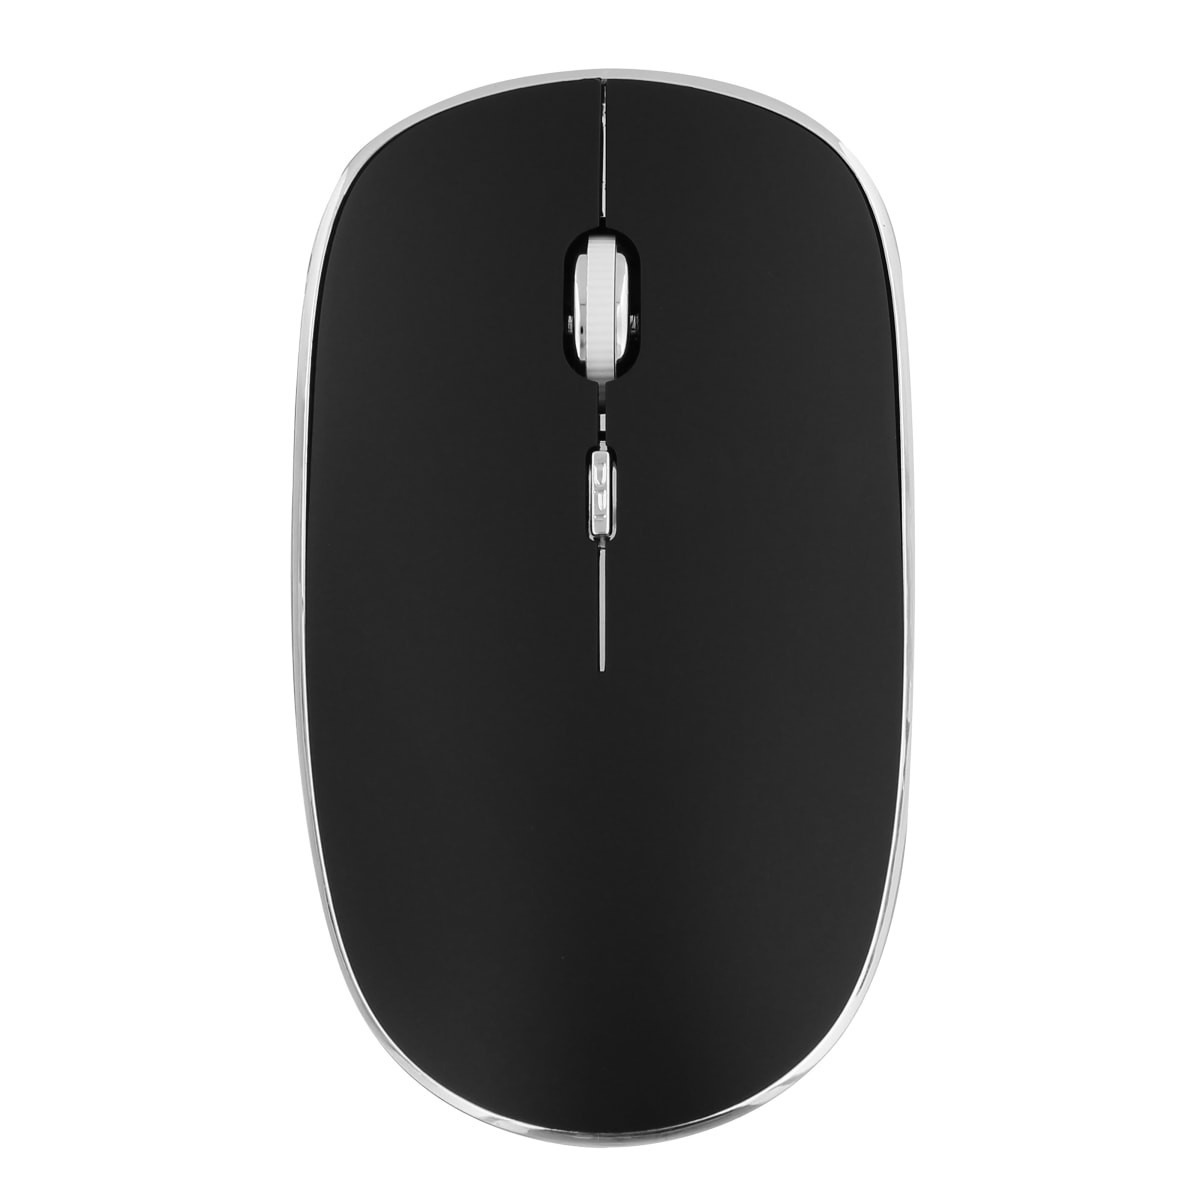 Wireless silent click mouse RUBBY black